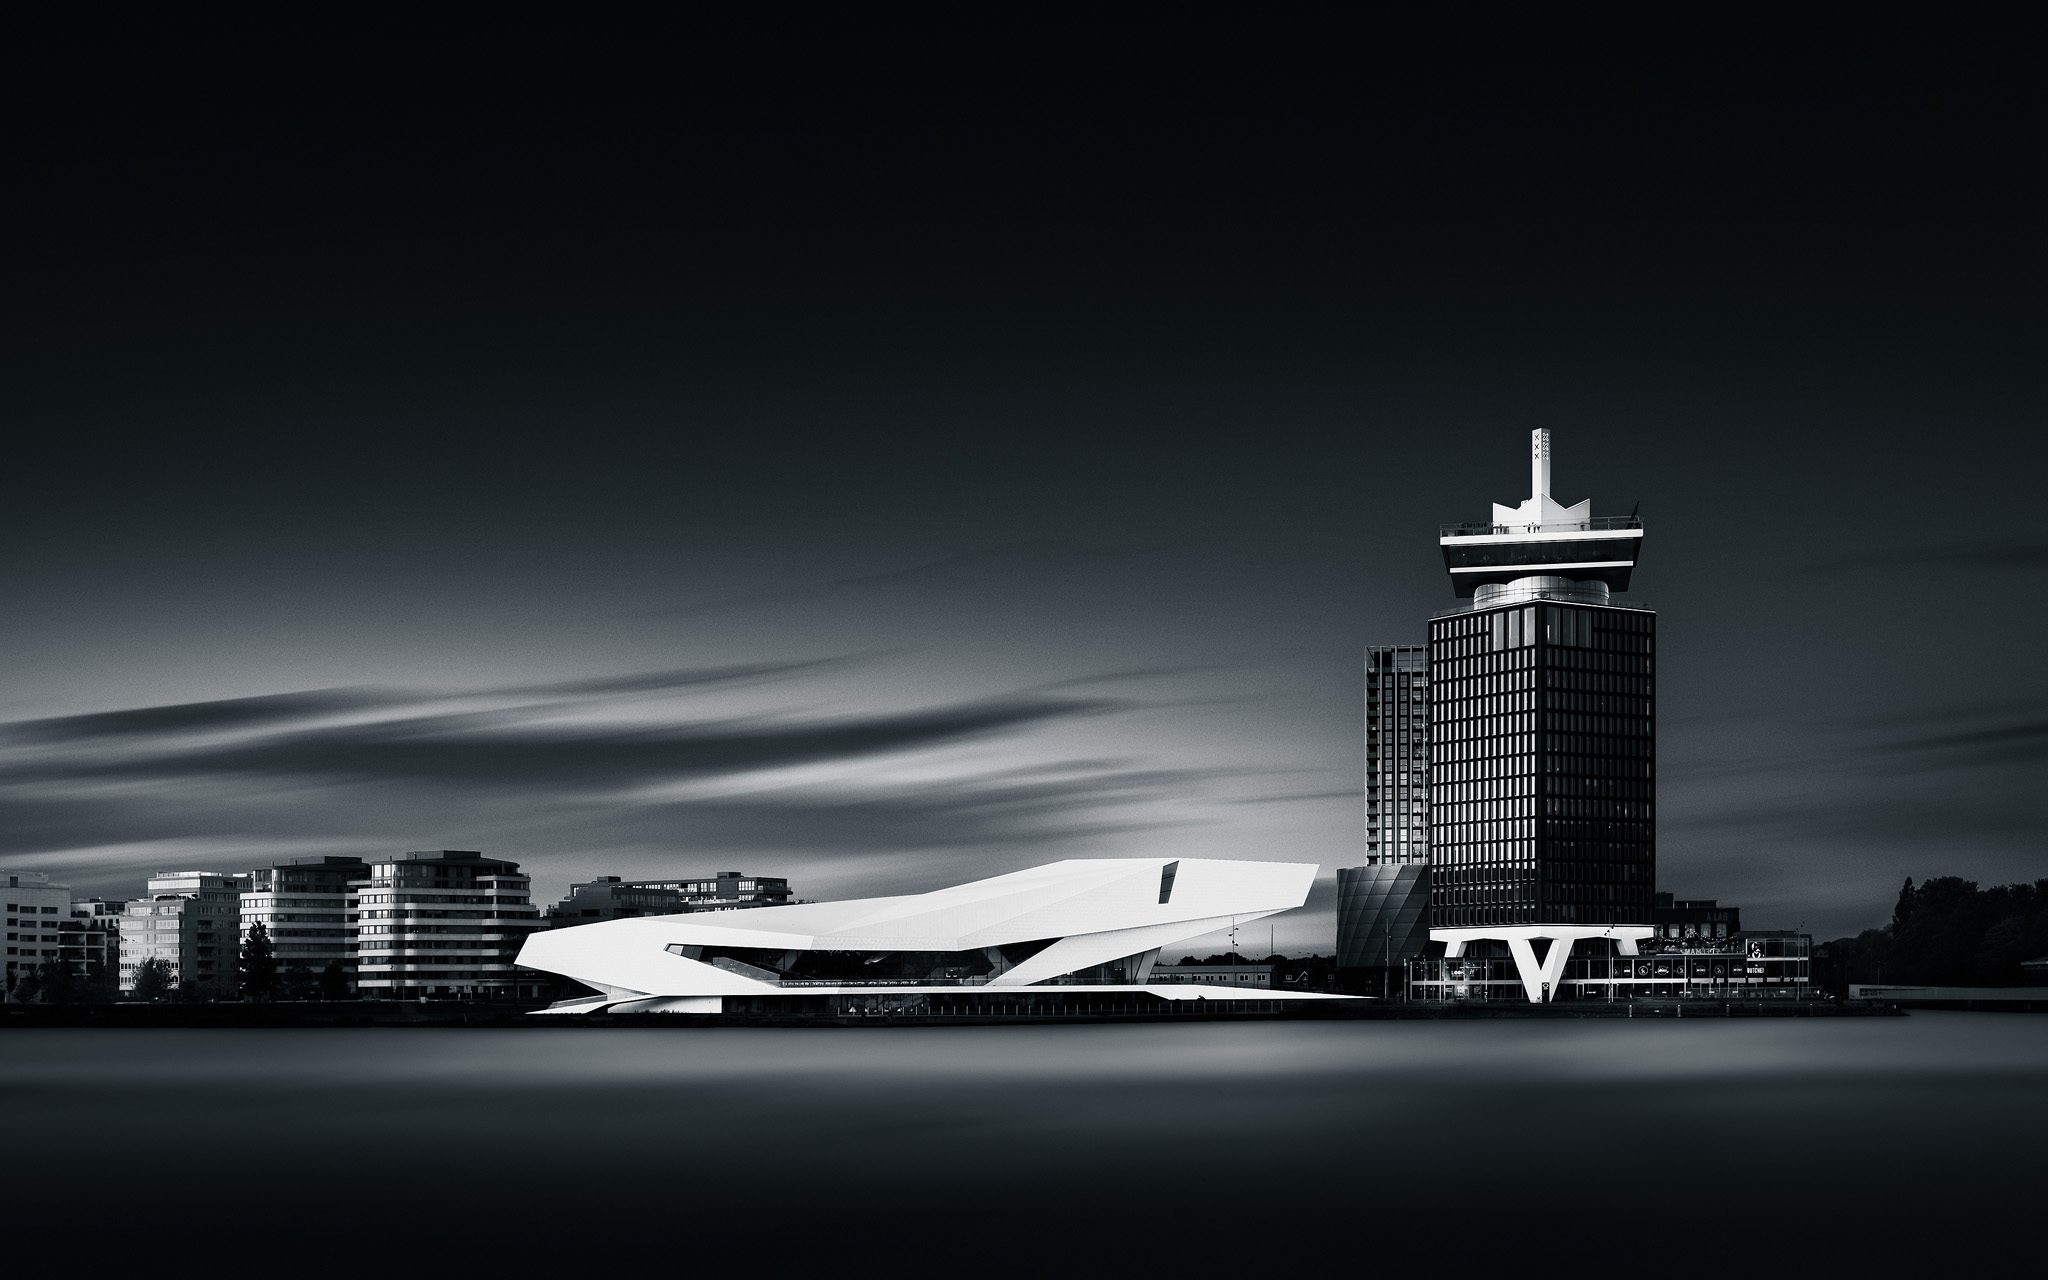 Fine Art Architectuur fotografie & Post Processing Workshop